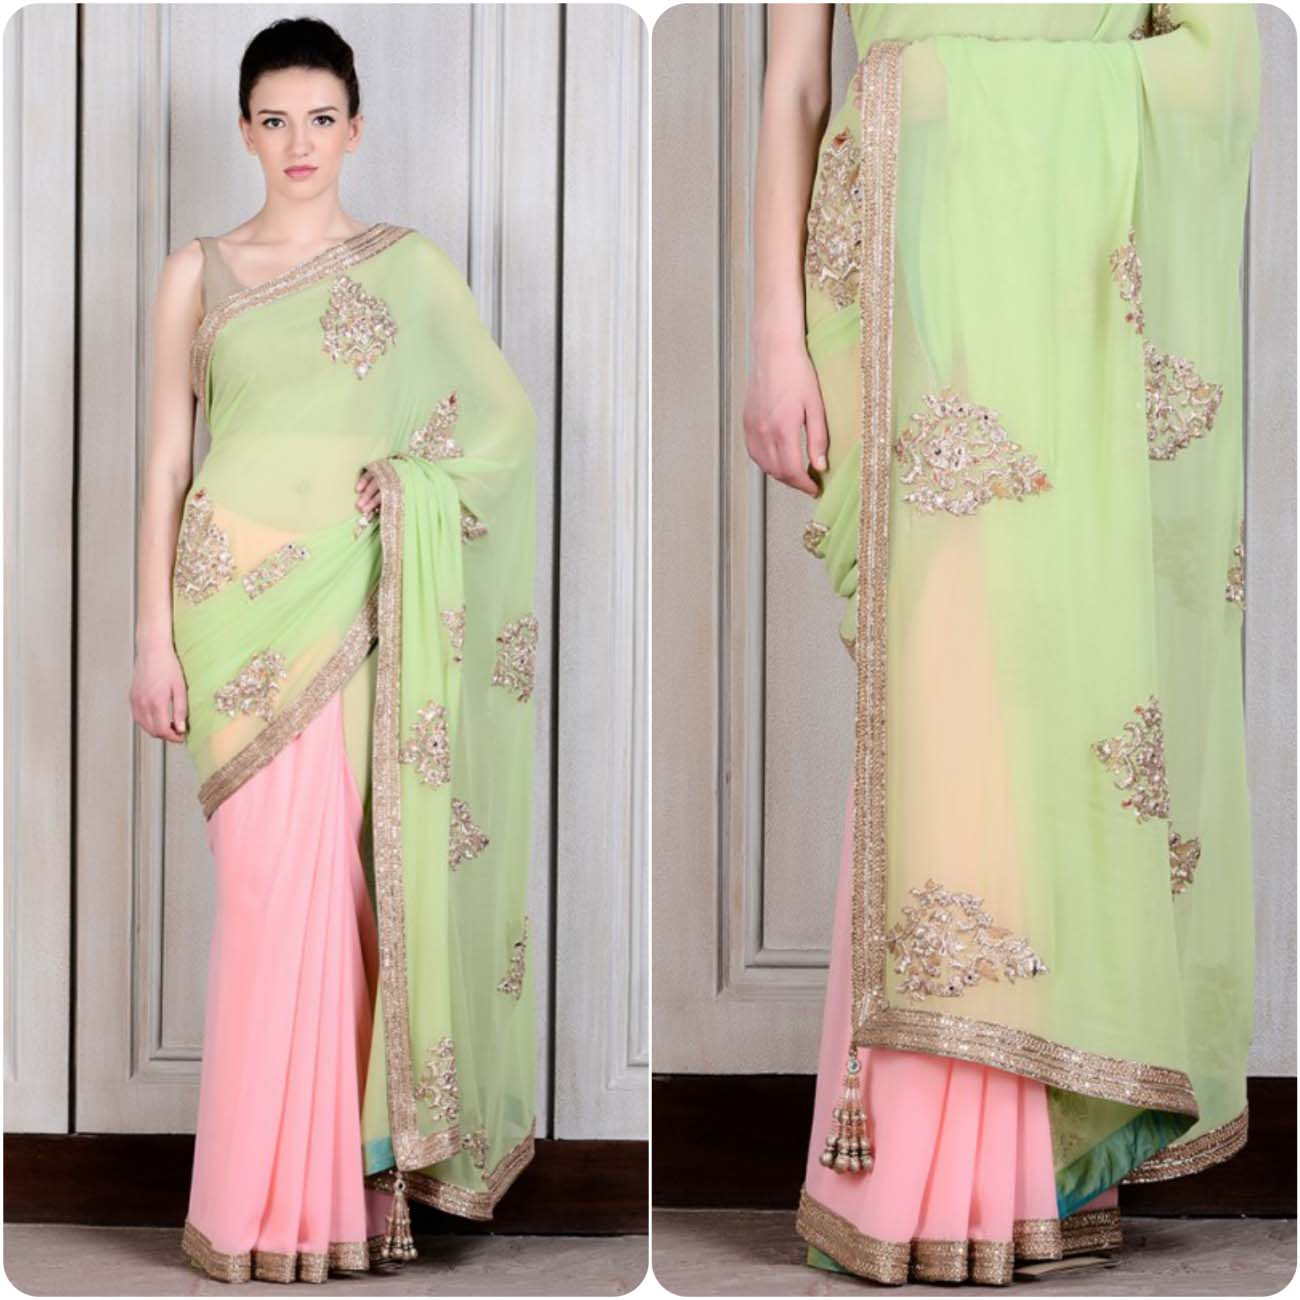 Manish Malhotra Designers Saree Collection 2016-2017...styloplanet (18)